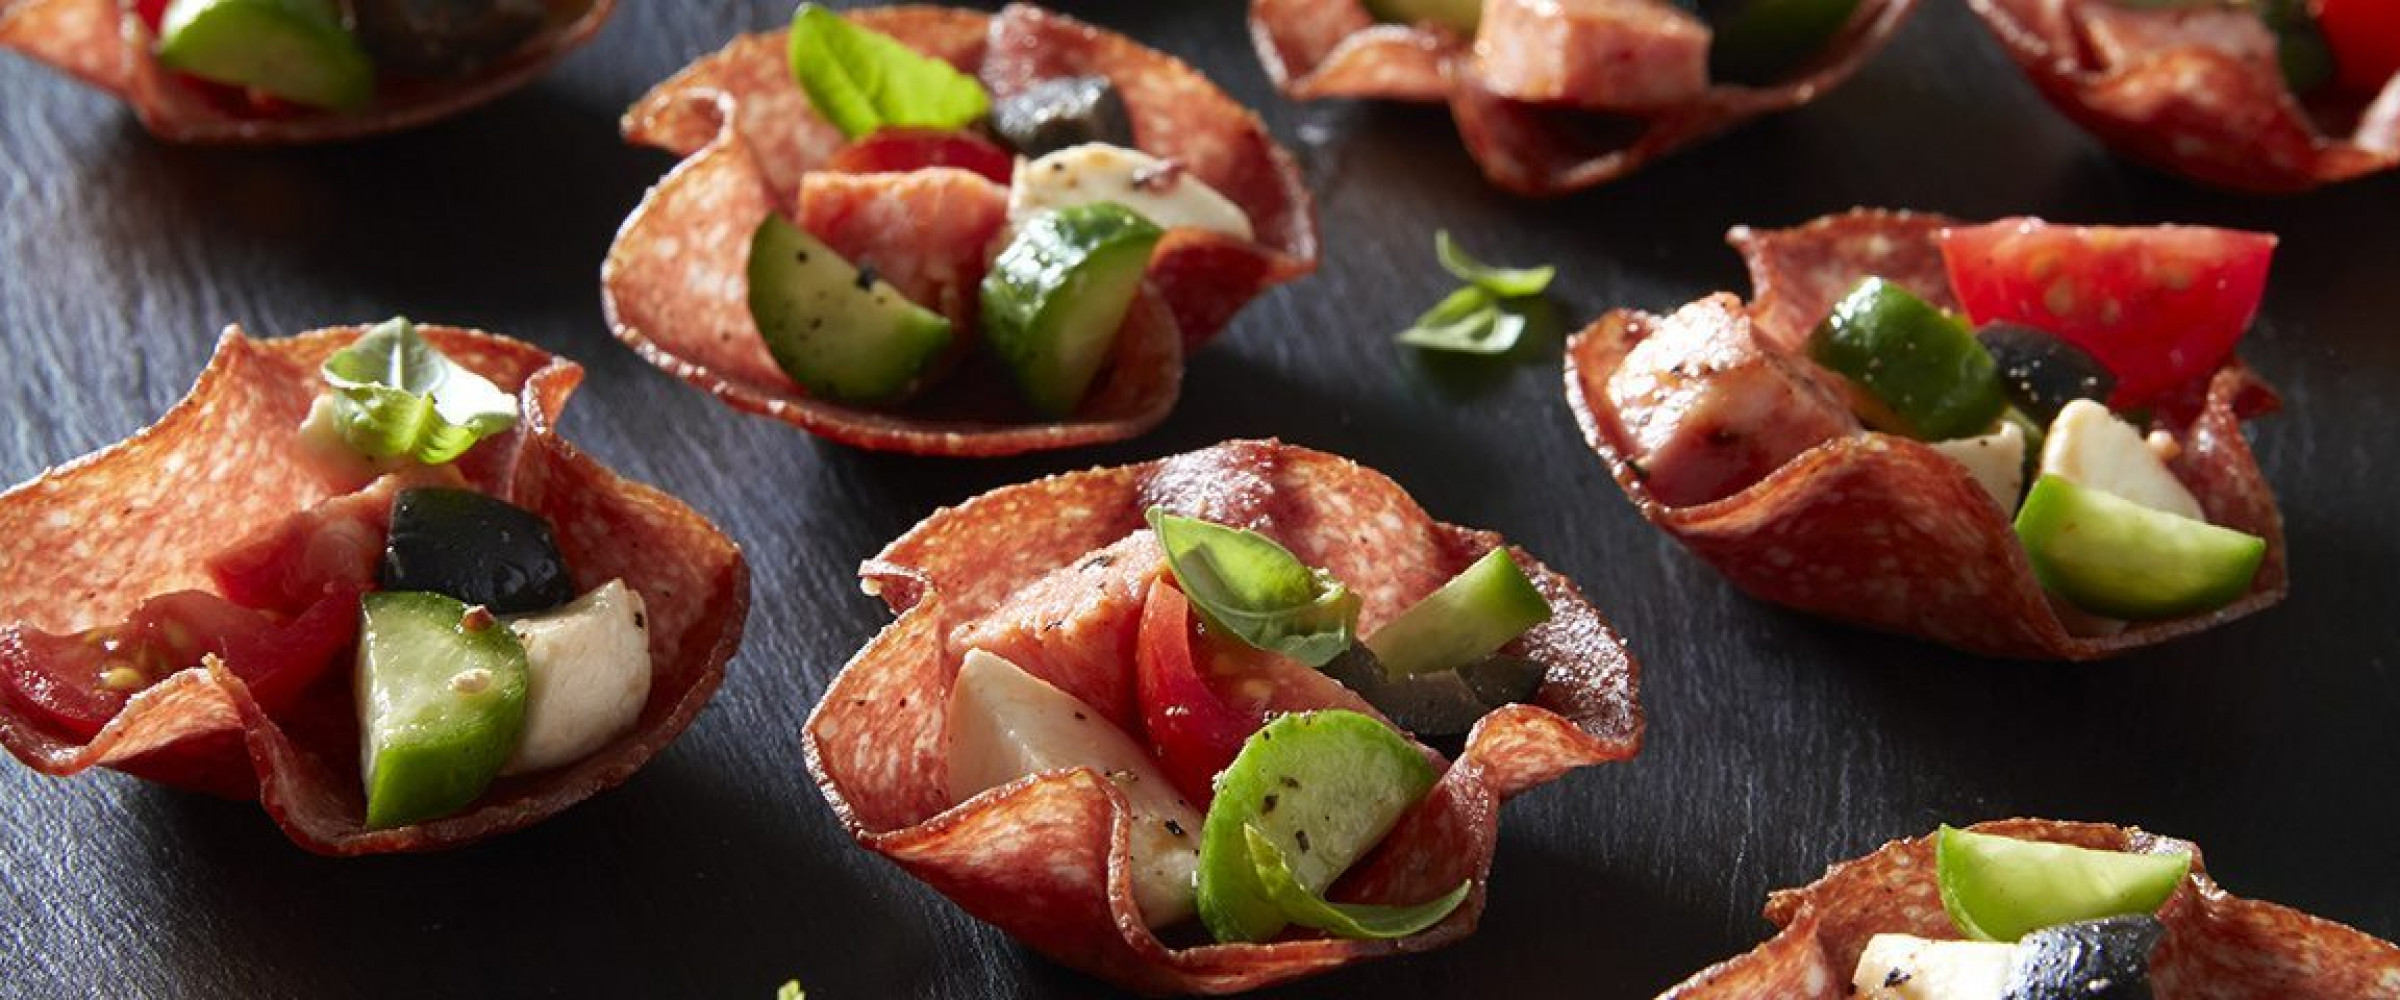 Salami cups with cheese, tomato, and cucumber